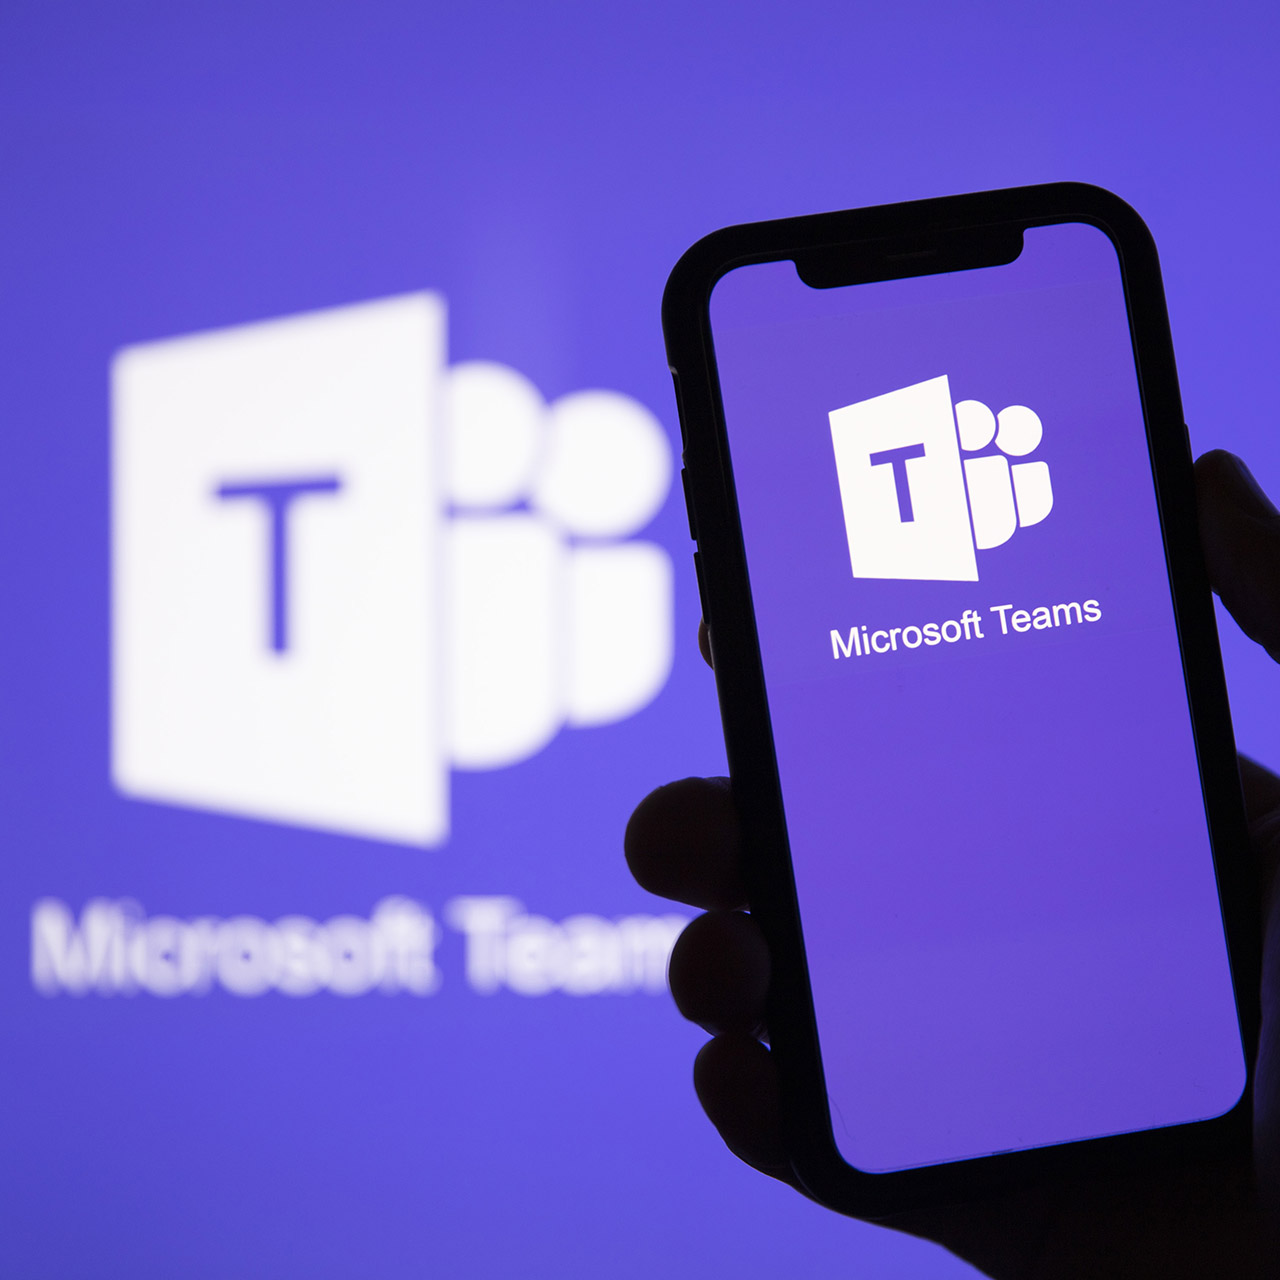 new Microsoft teams features